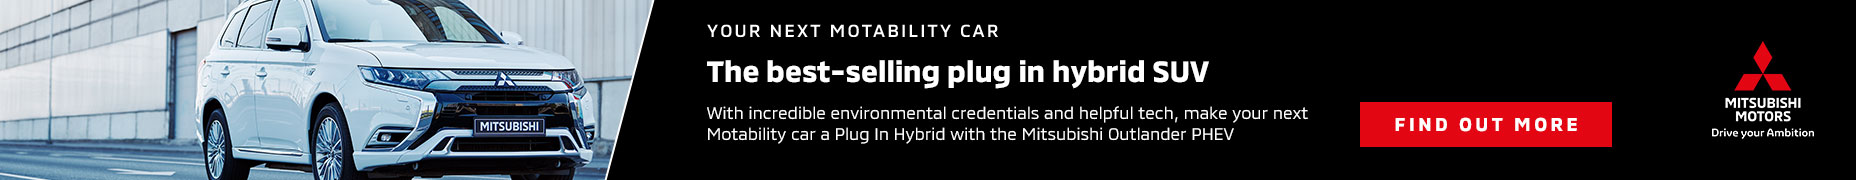 1 Live - Mitsubishi Outlander PHEV - Added 1/4/2020